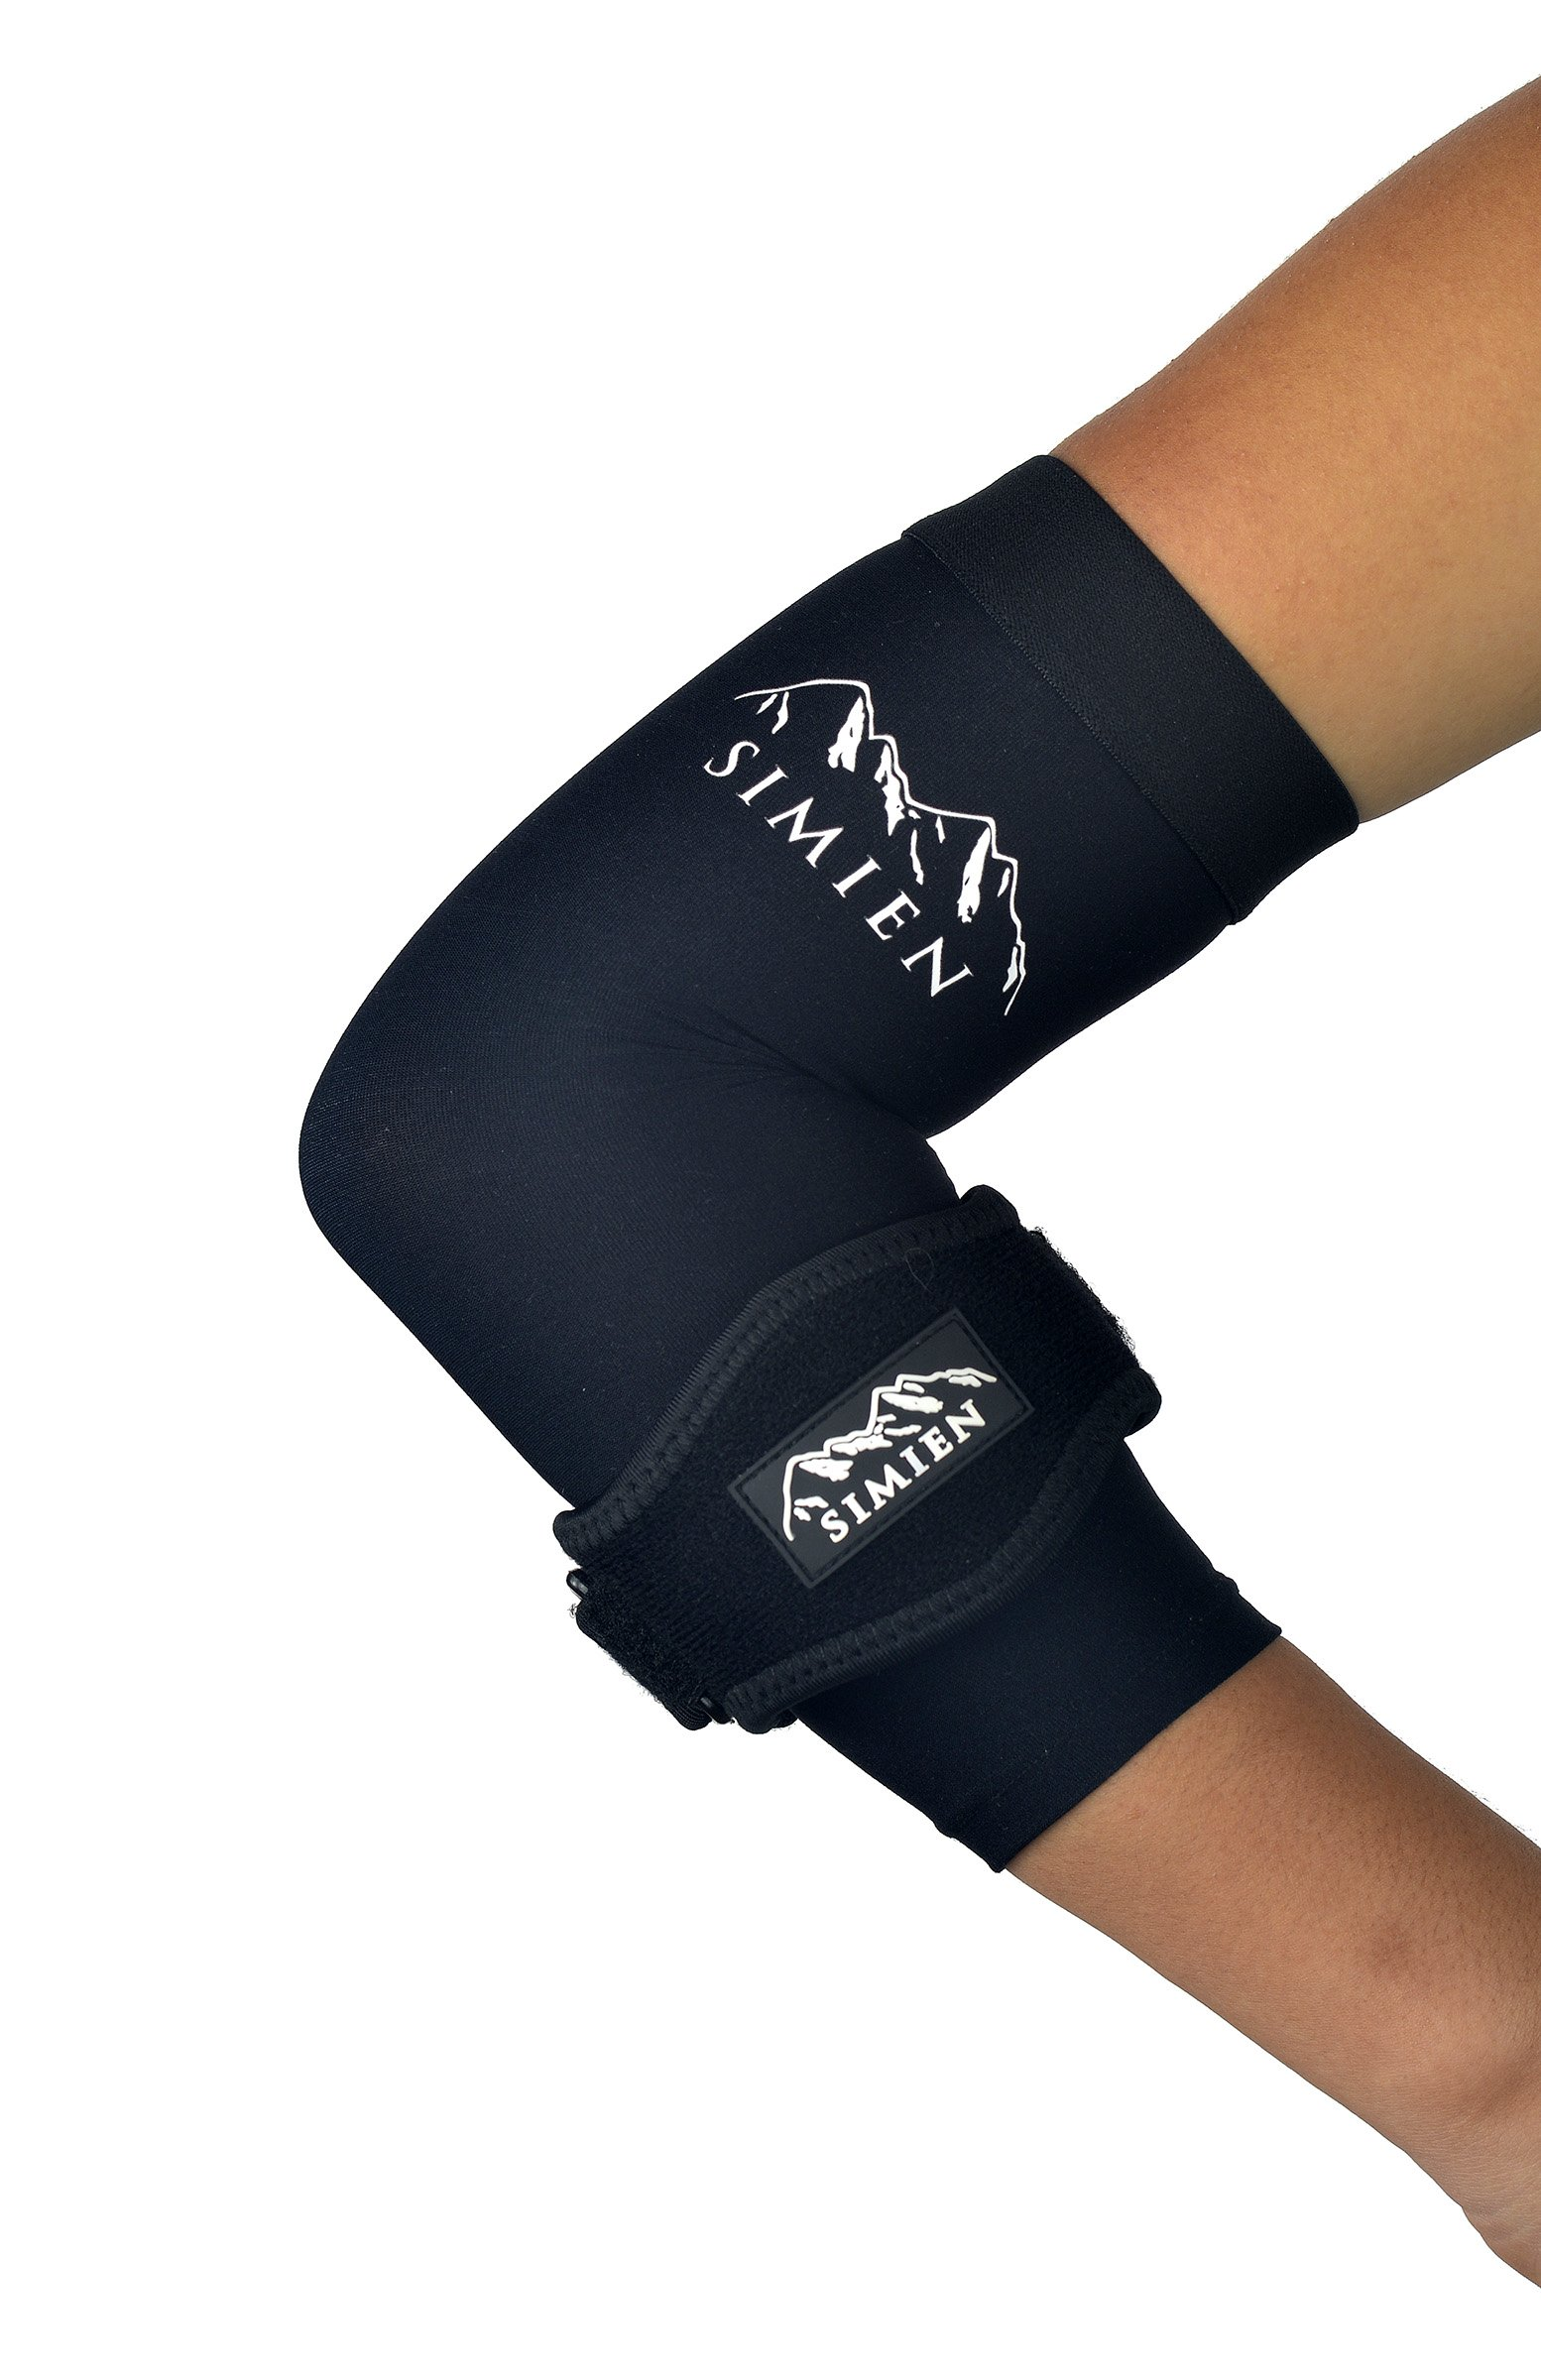 SIMIEN Elbow Brace + Sleeve Compression Combo (1-Count Each) - Small - Reduces Inflammation for Tennis Elbow, Golfer's Elbow, Tendonitis Pain - 88% Copper Sleeve - Results or